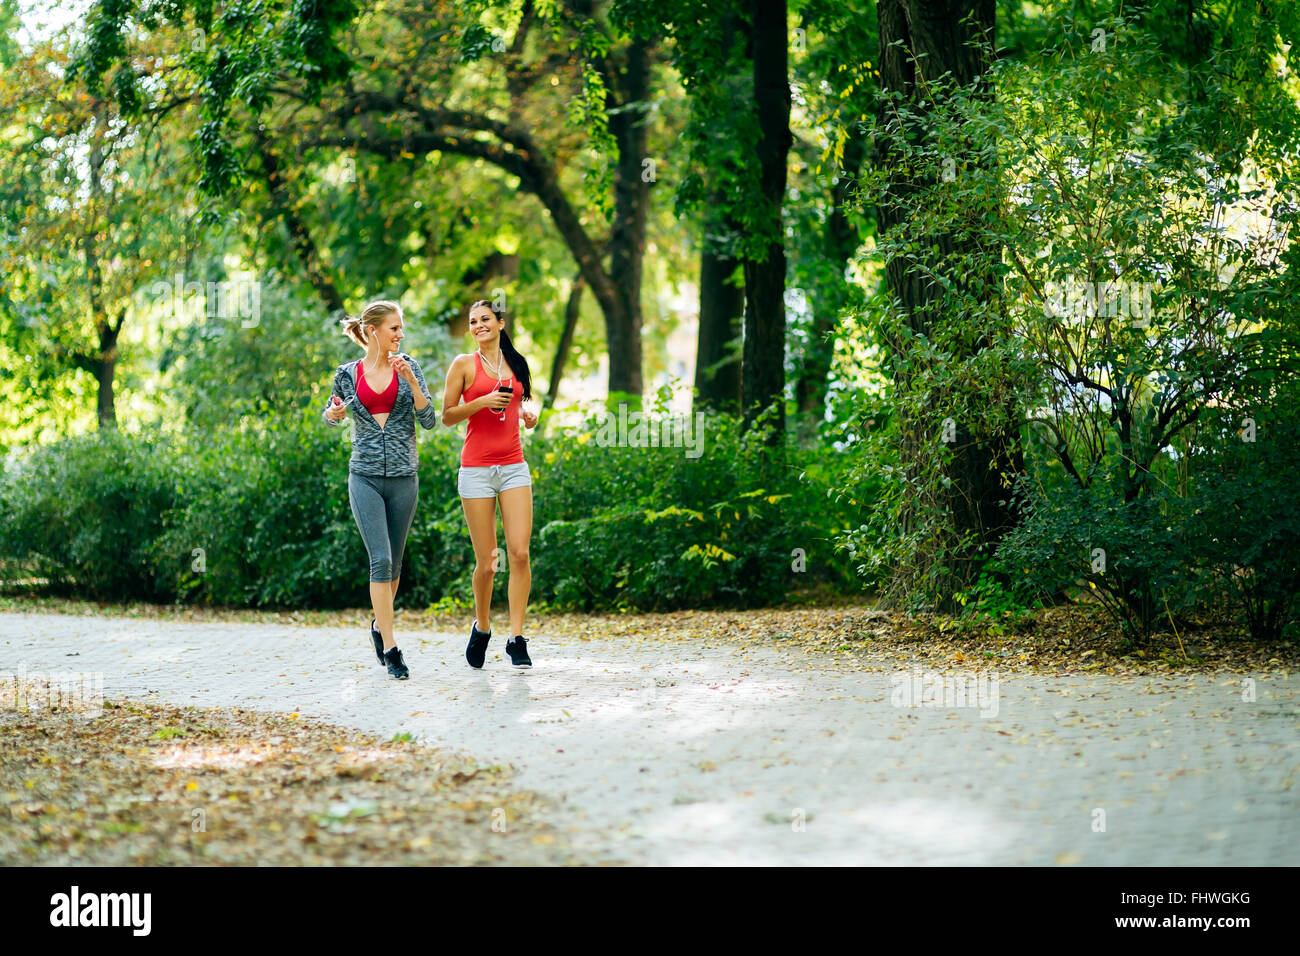 Sportive women jogging in park and listening to music through earphones - Stock Image